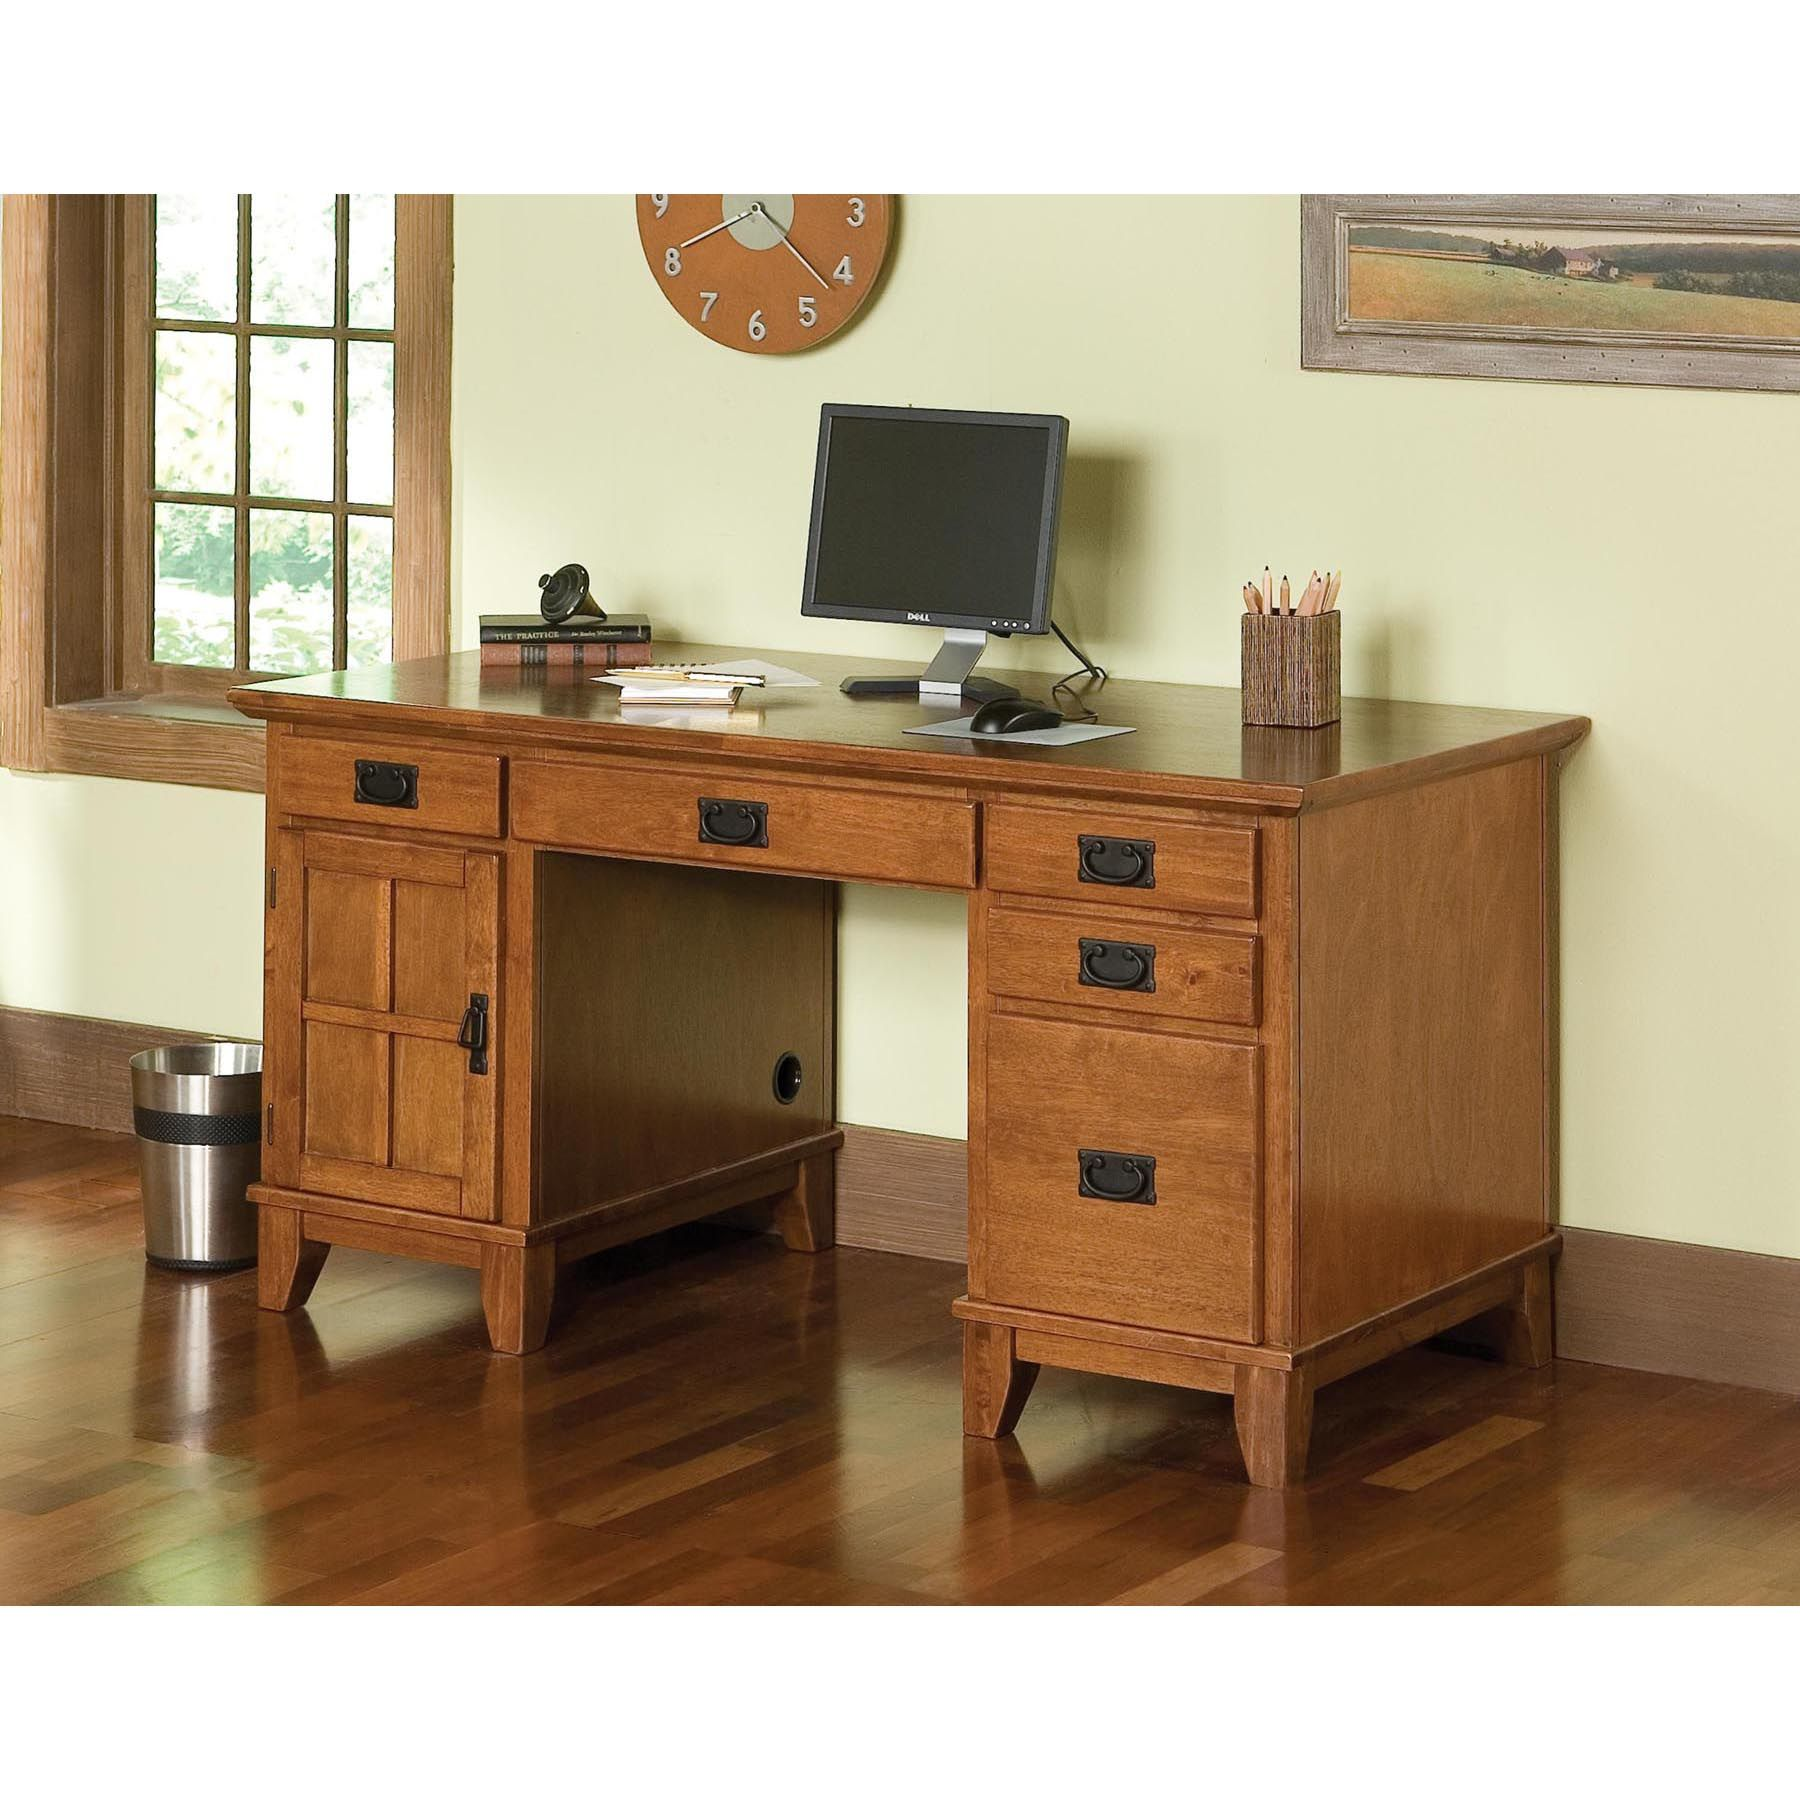 Enhance the decor of your home or office with this oak pedestal desk